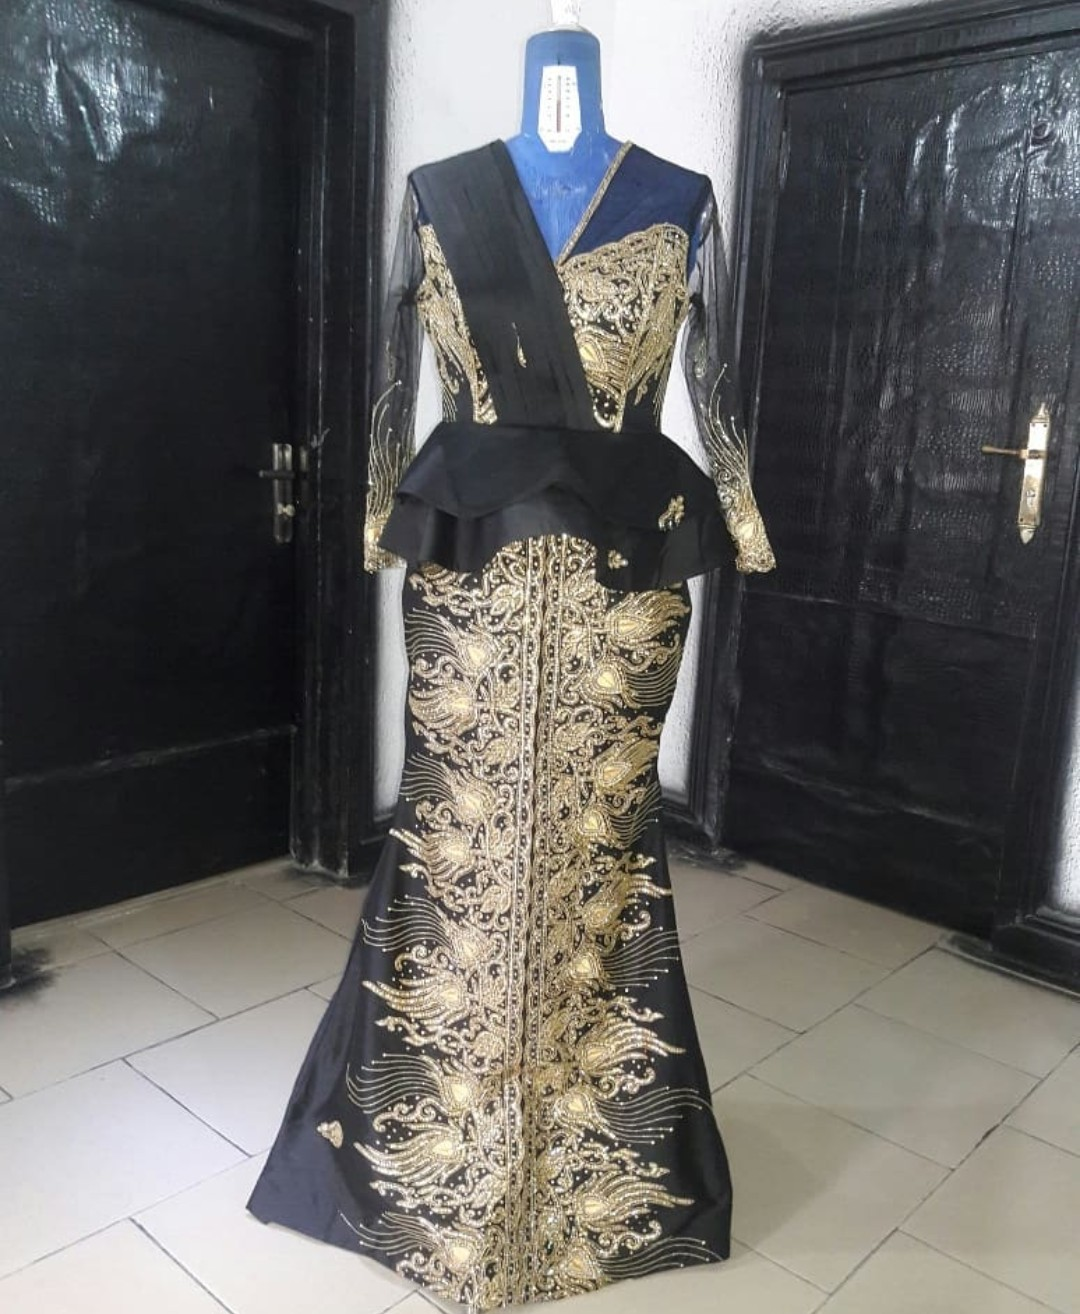 2020 TRADITIONAL SKIRTS&BLOUSES STYLES 2020 LATEST LACE GOWNS DESIGNS 4